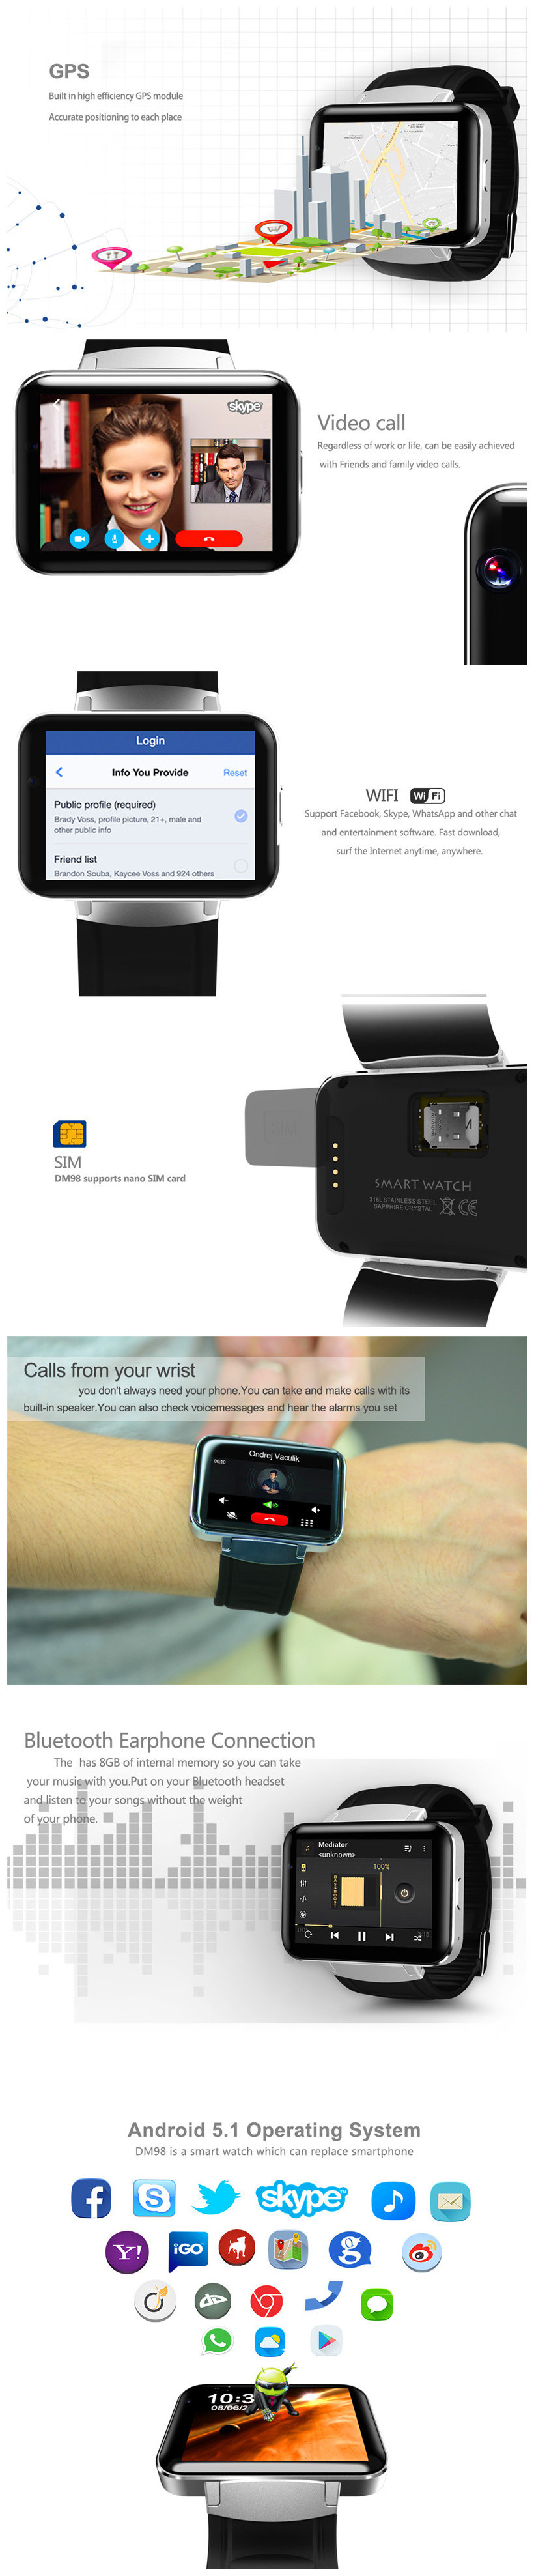 Dm98 Bluetooth Smart Watch 2 2 Inch Android OS 3G Smartwatch Phone